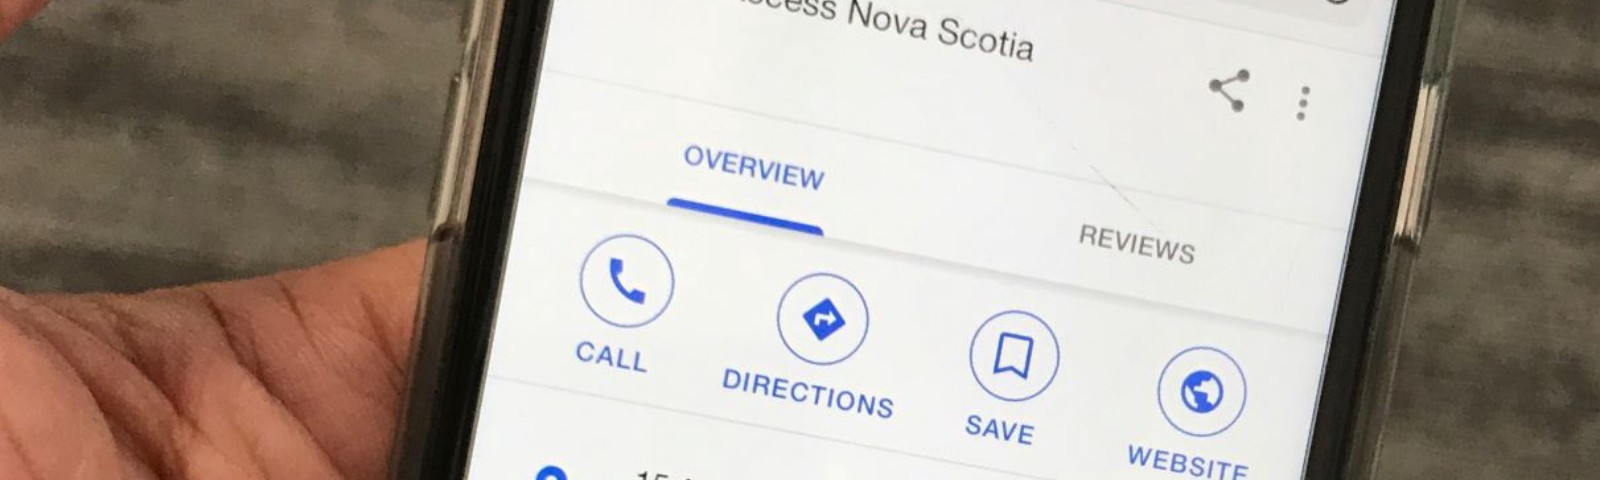 A cell phone showing Google location information for an Access Nova Scotia service location.